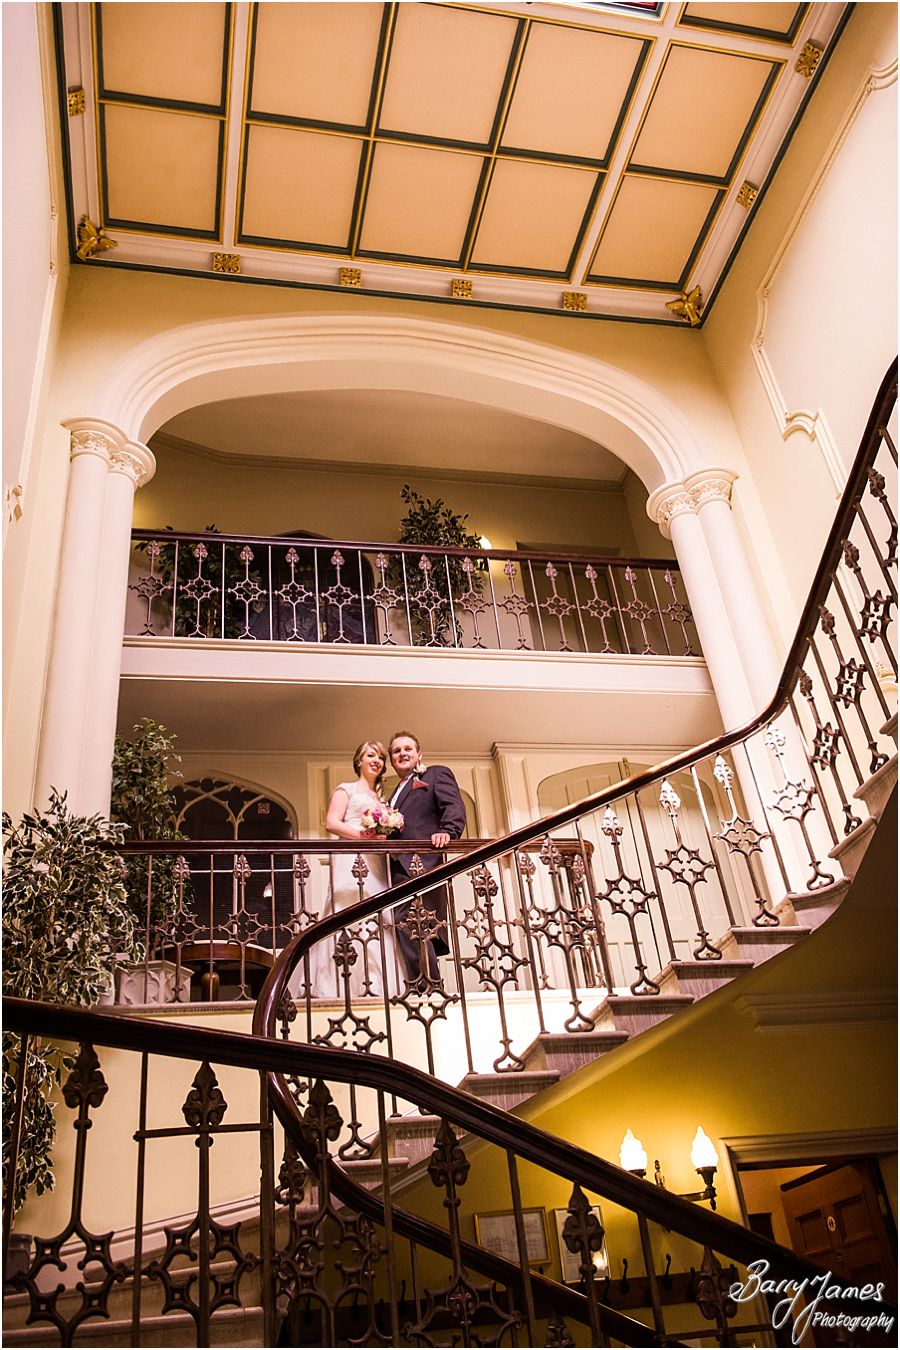 Stunning intimate portraits in the beautiful staircase at Hawkesyard Hall in Rugeley by Venue Recommended Wedding Photographer Barry James